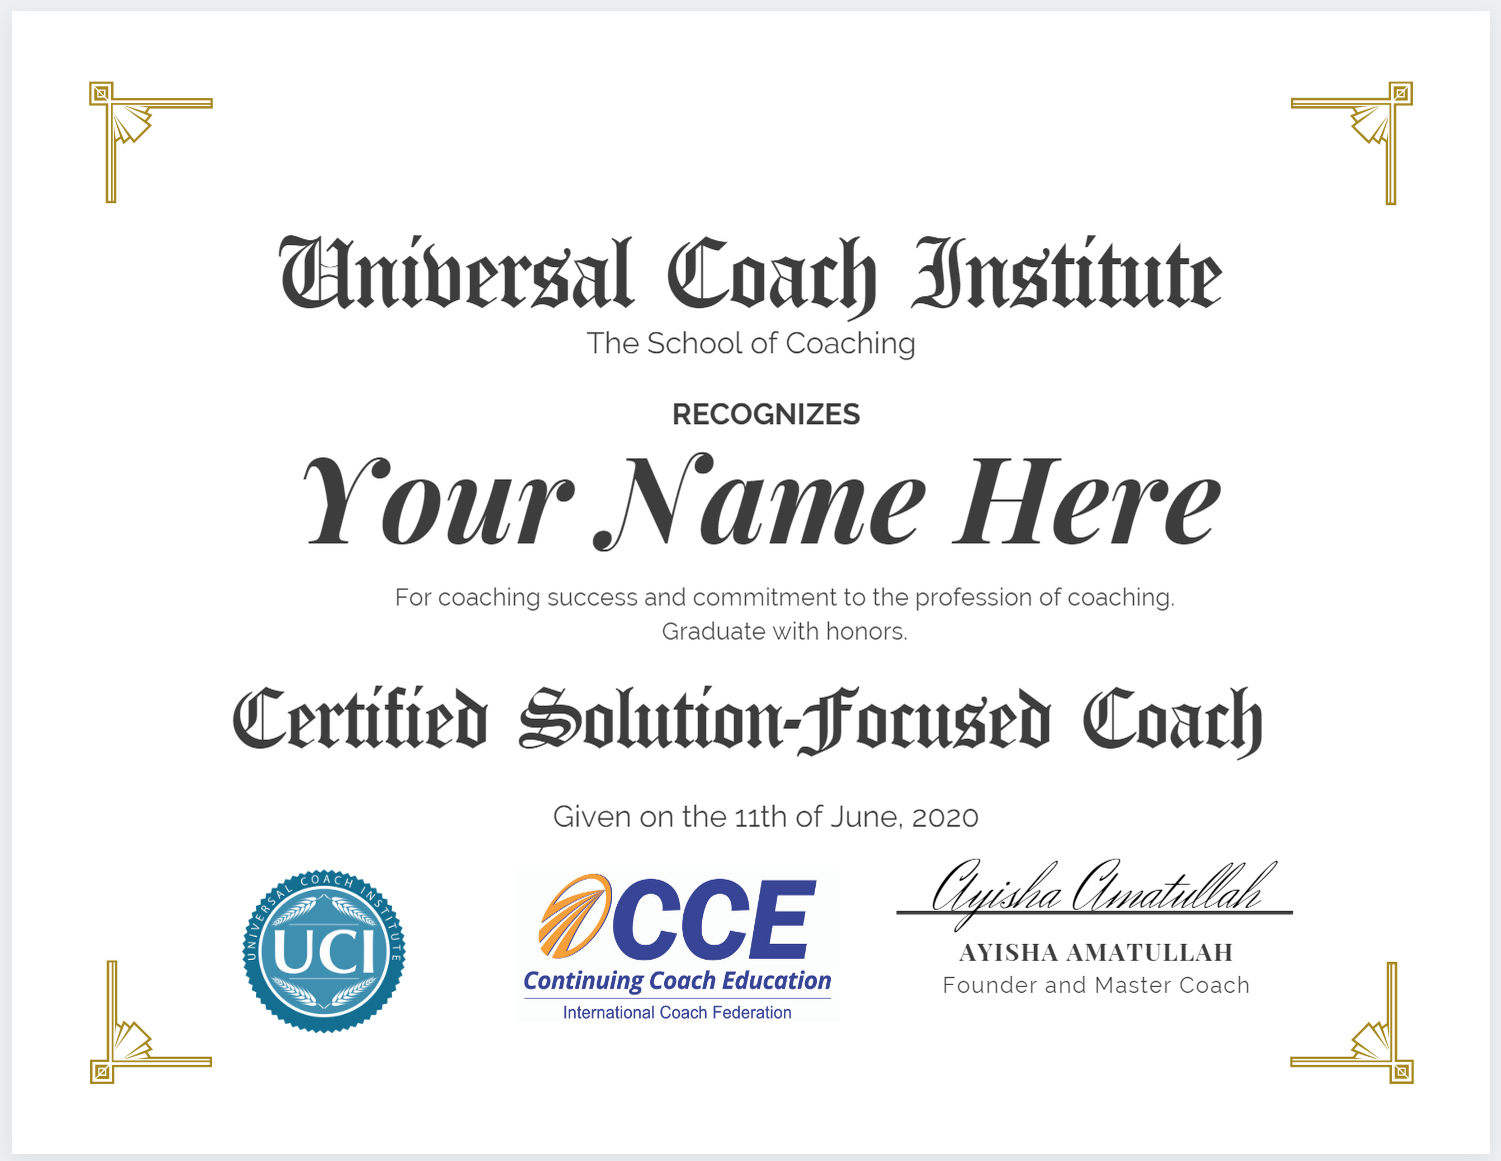 Solution-Focused Coach Certificate - Universal Coach Institute